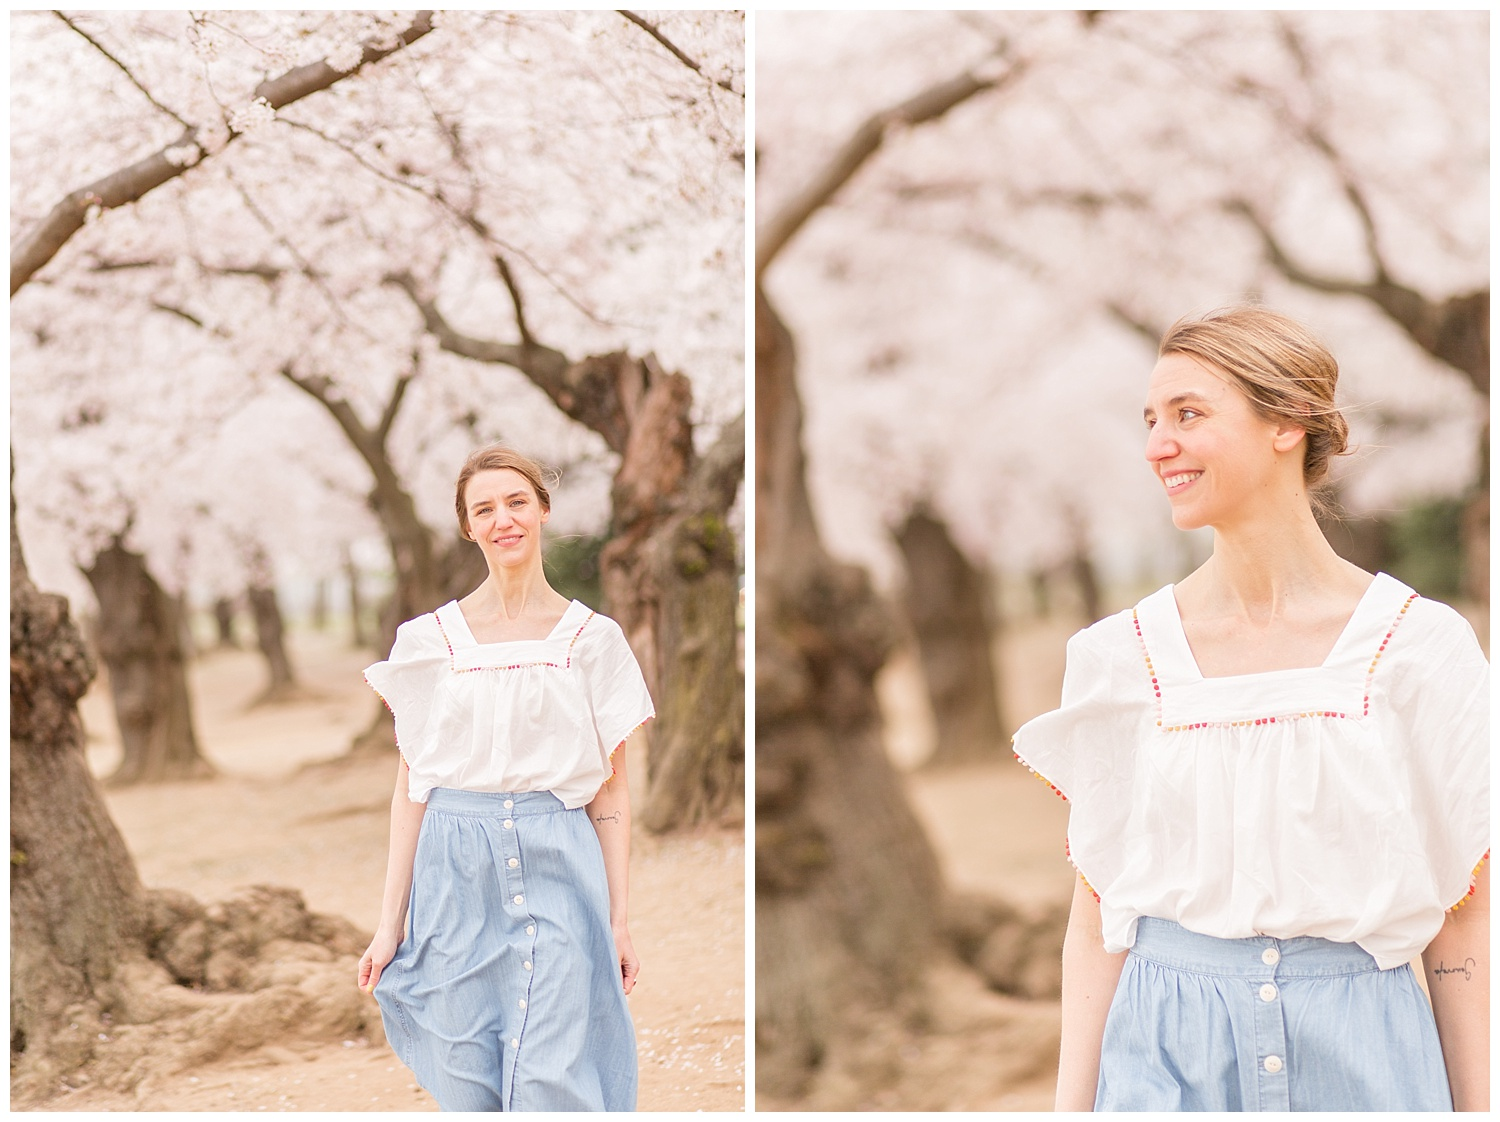 emily-belson-photography-cherry-blossom-dc-jessica-05.jpg